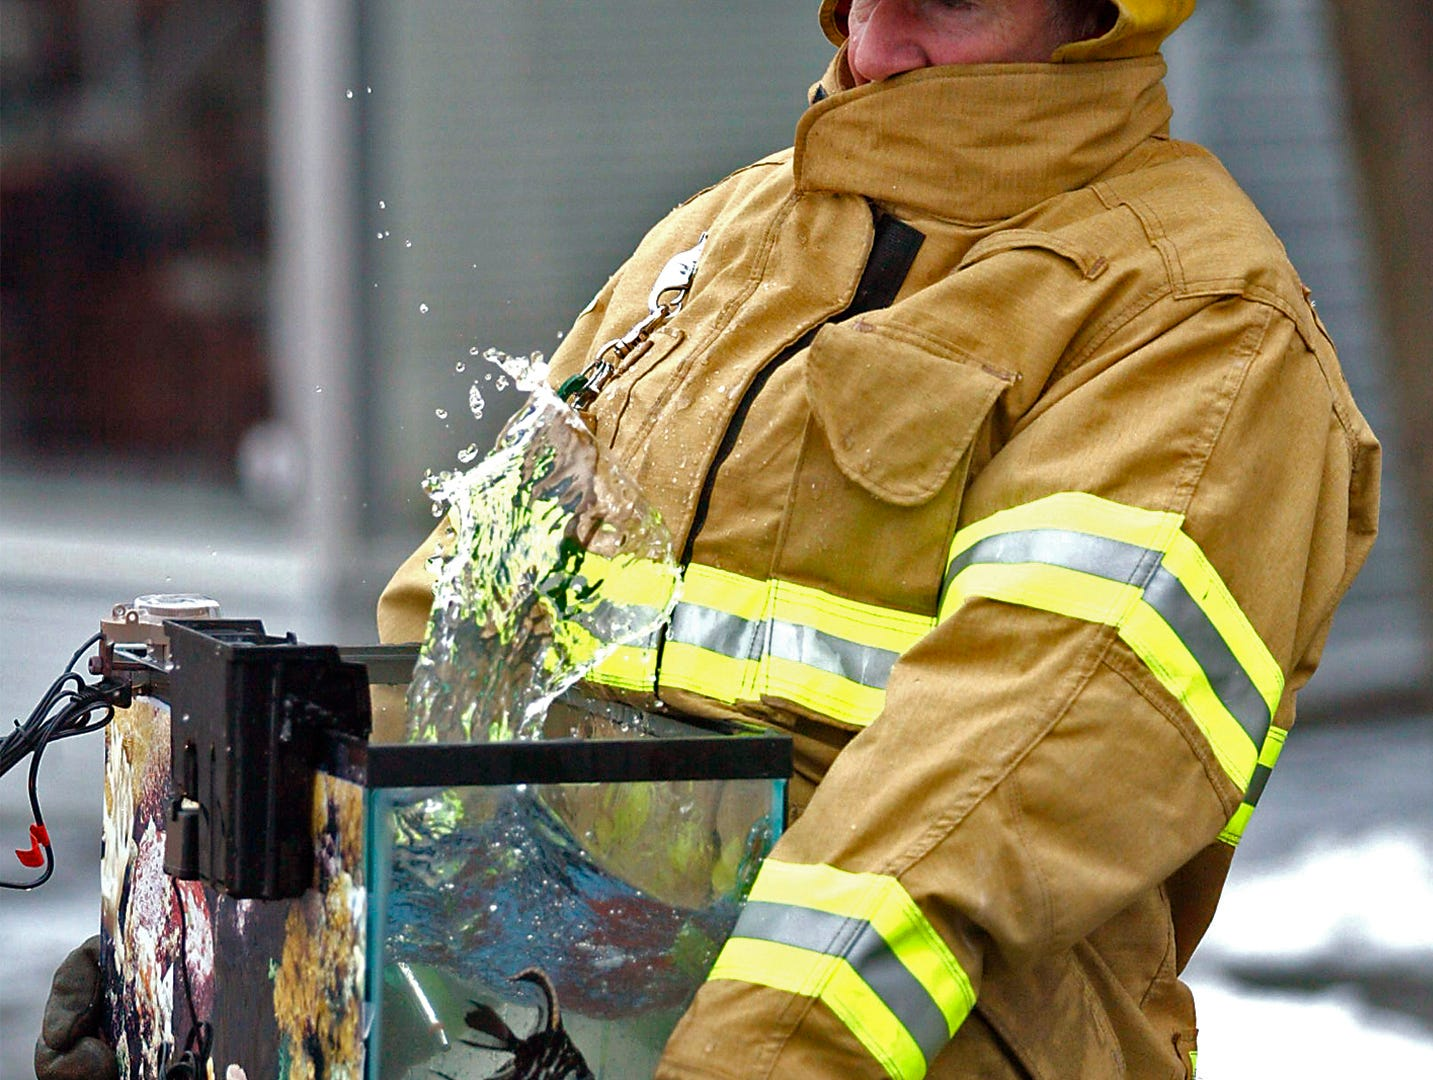 January 8, 2003, Morristown firefighter Fred Richardson rescues an angel fish from a Morristown house that was next to a burning abandoned lumber yard.